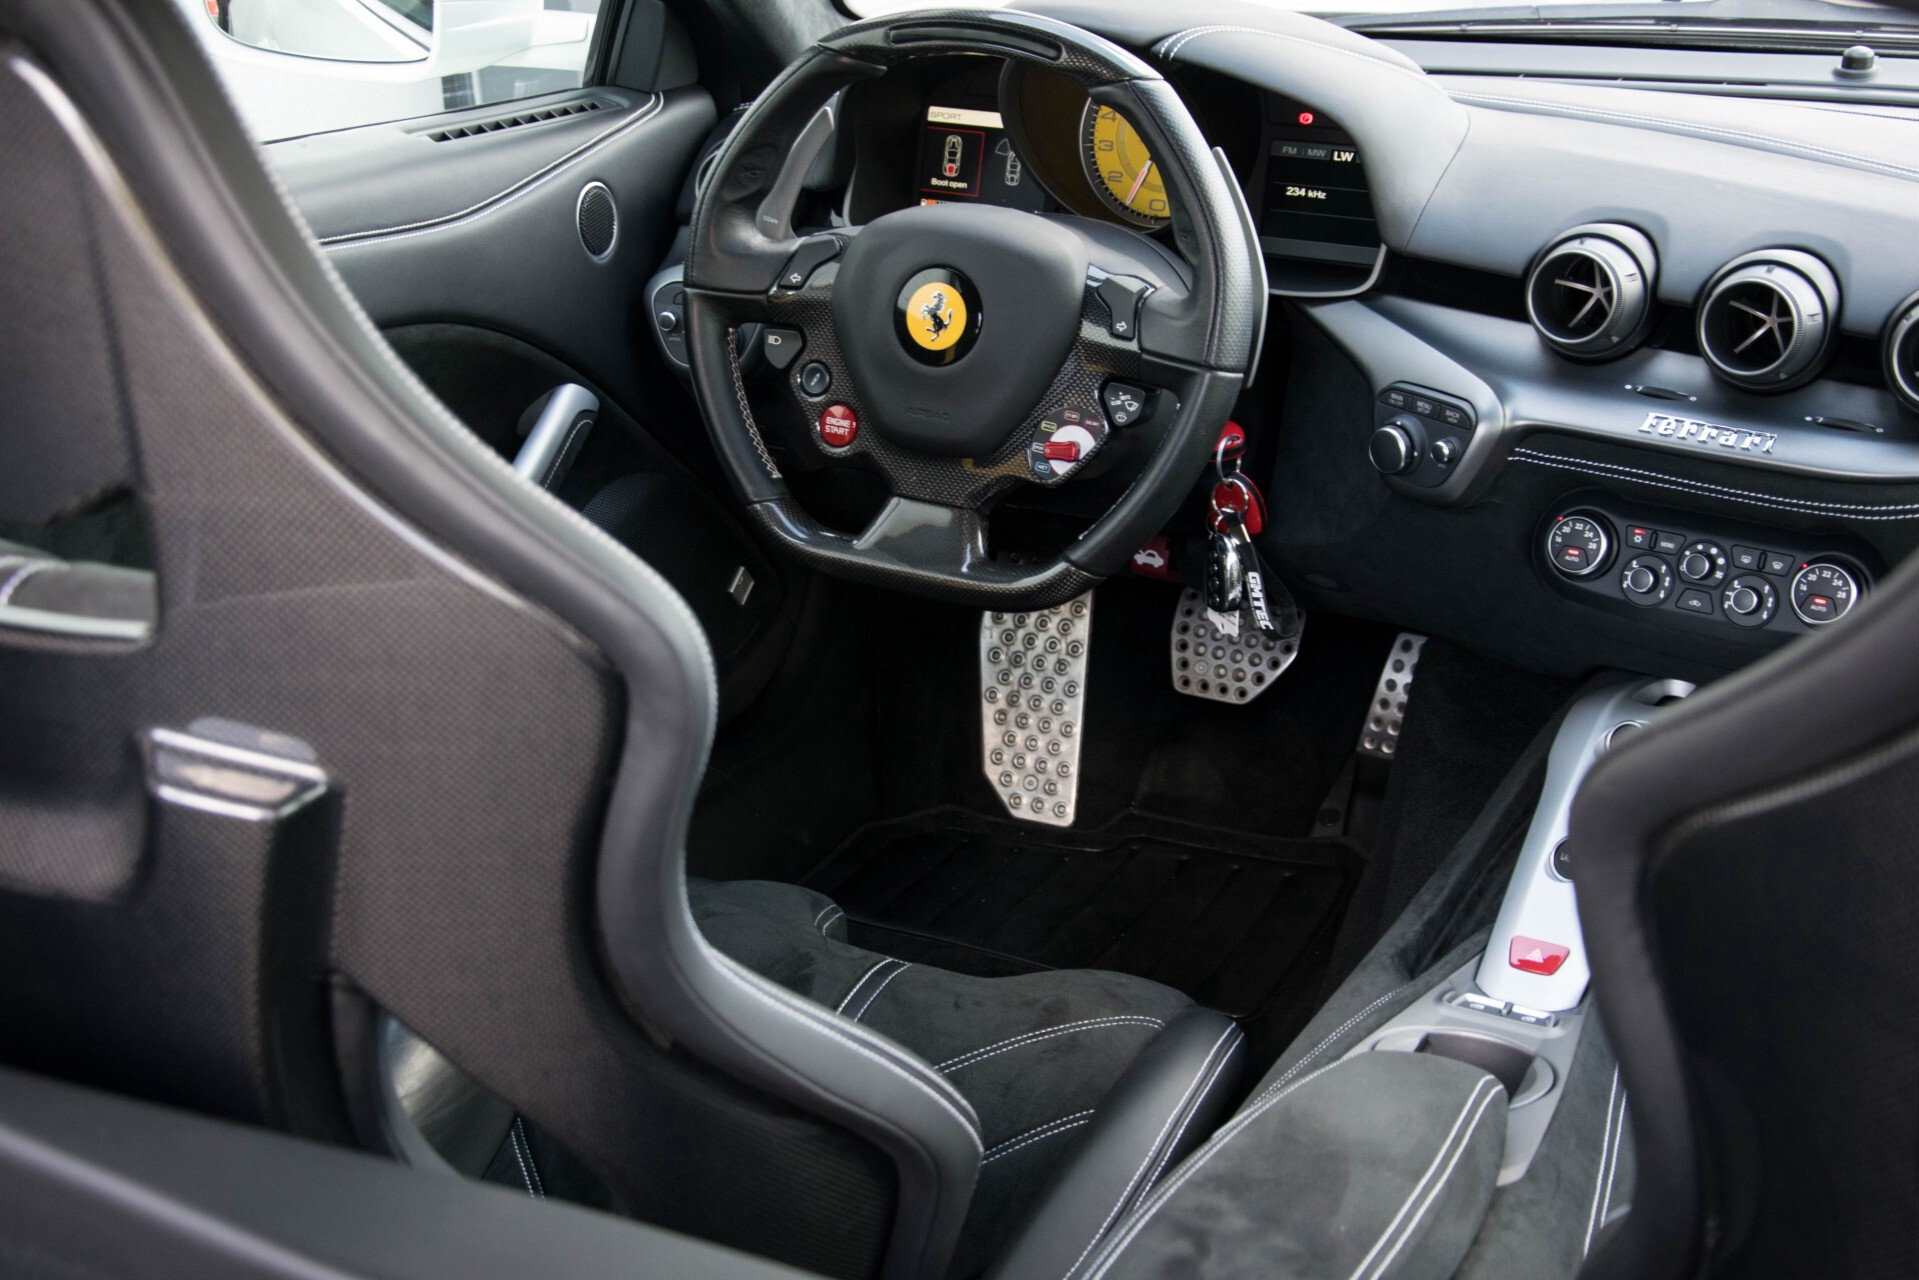 Ferrari F12 6.3 Berlinetta Capristo/Carbonseats/Led/Passenger Display Aut7 Foto 4